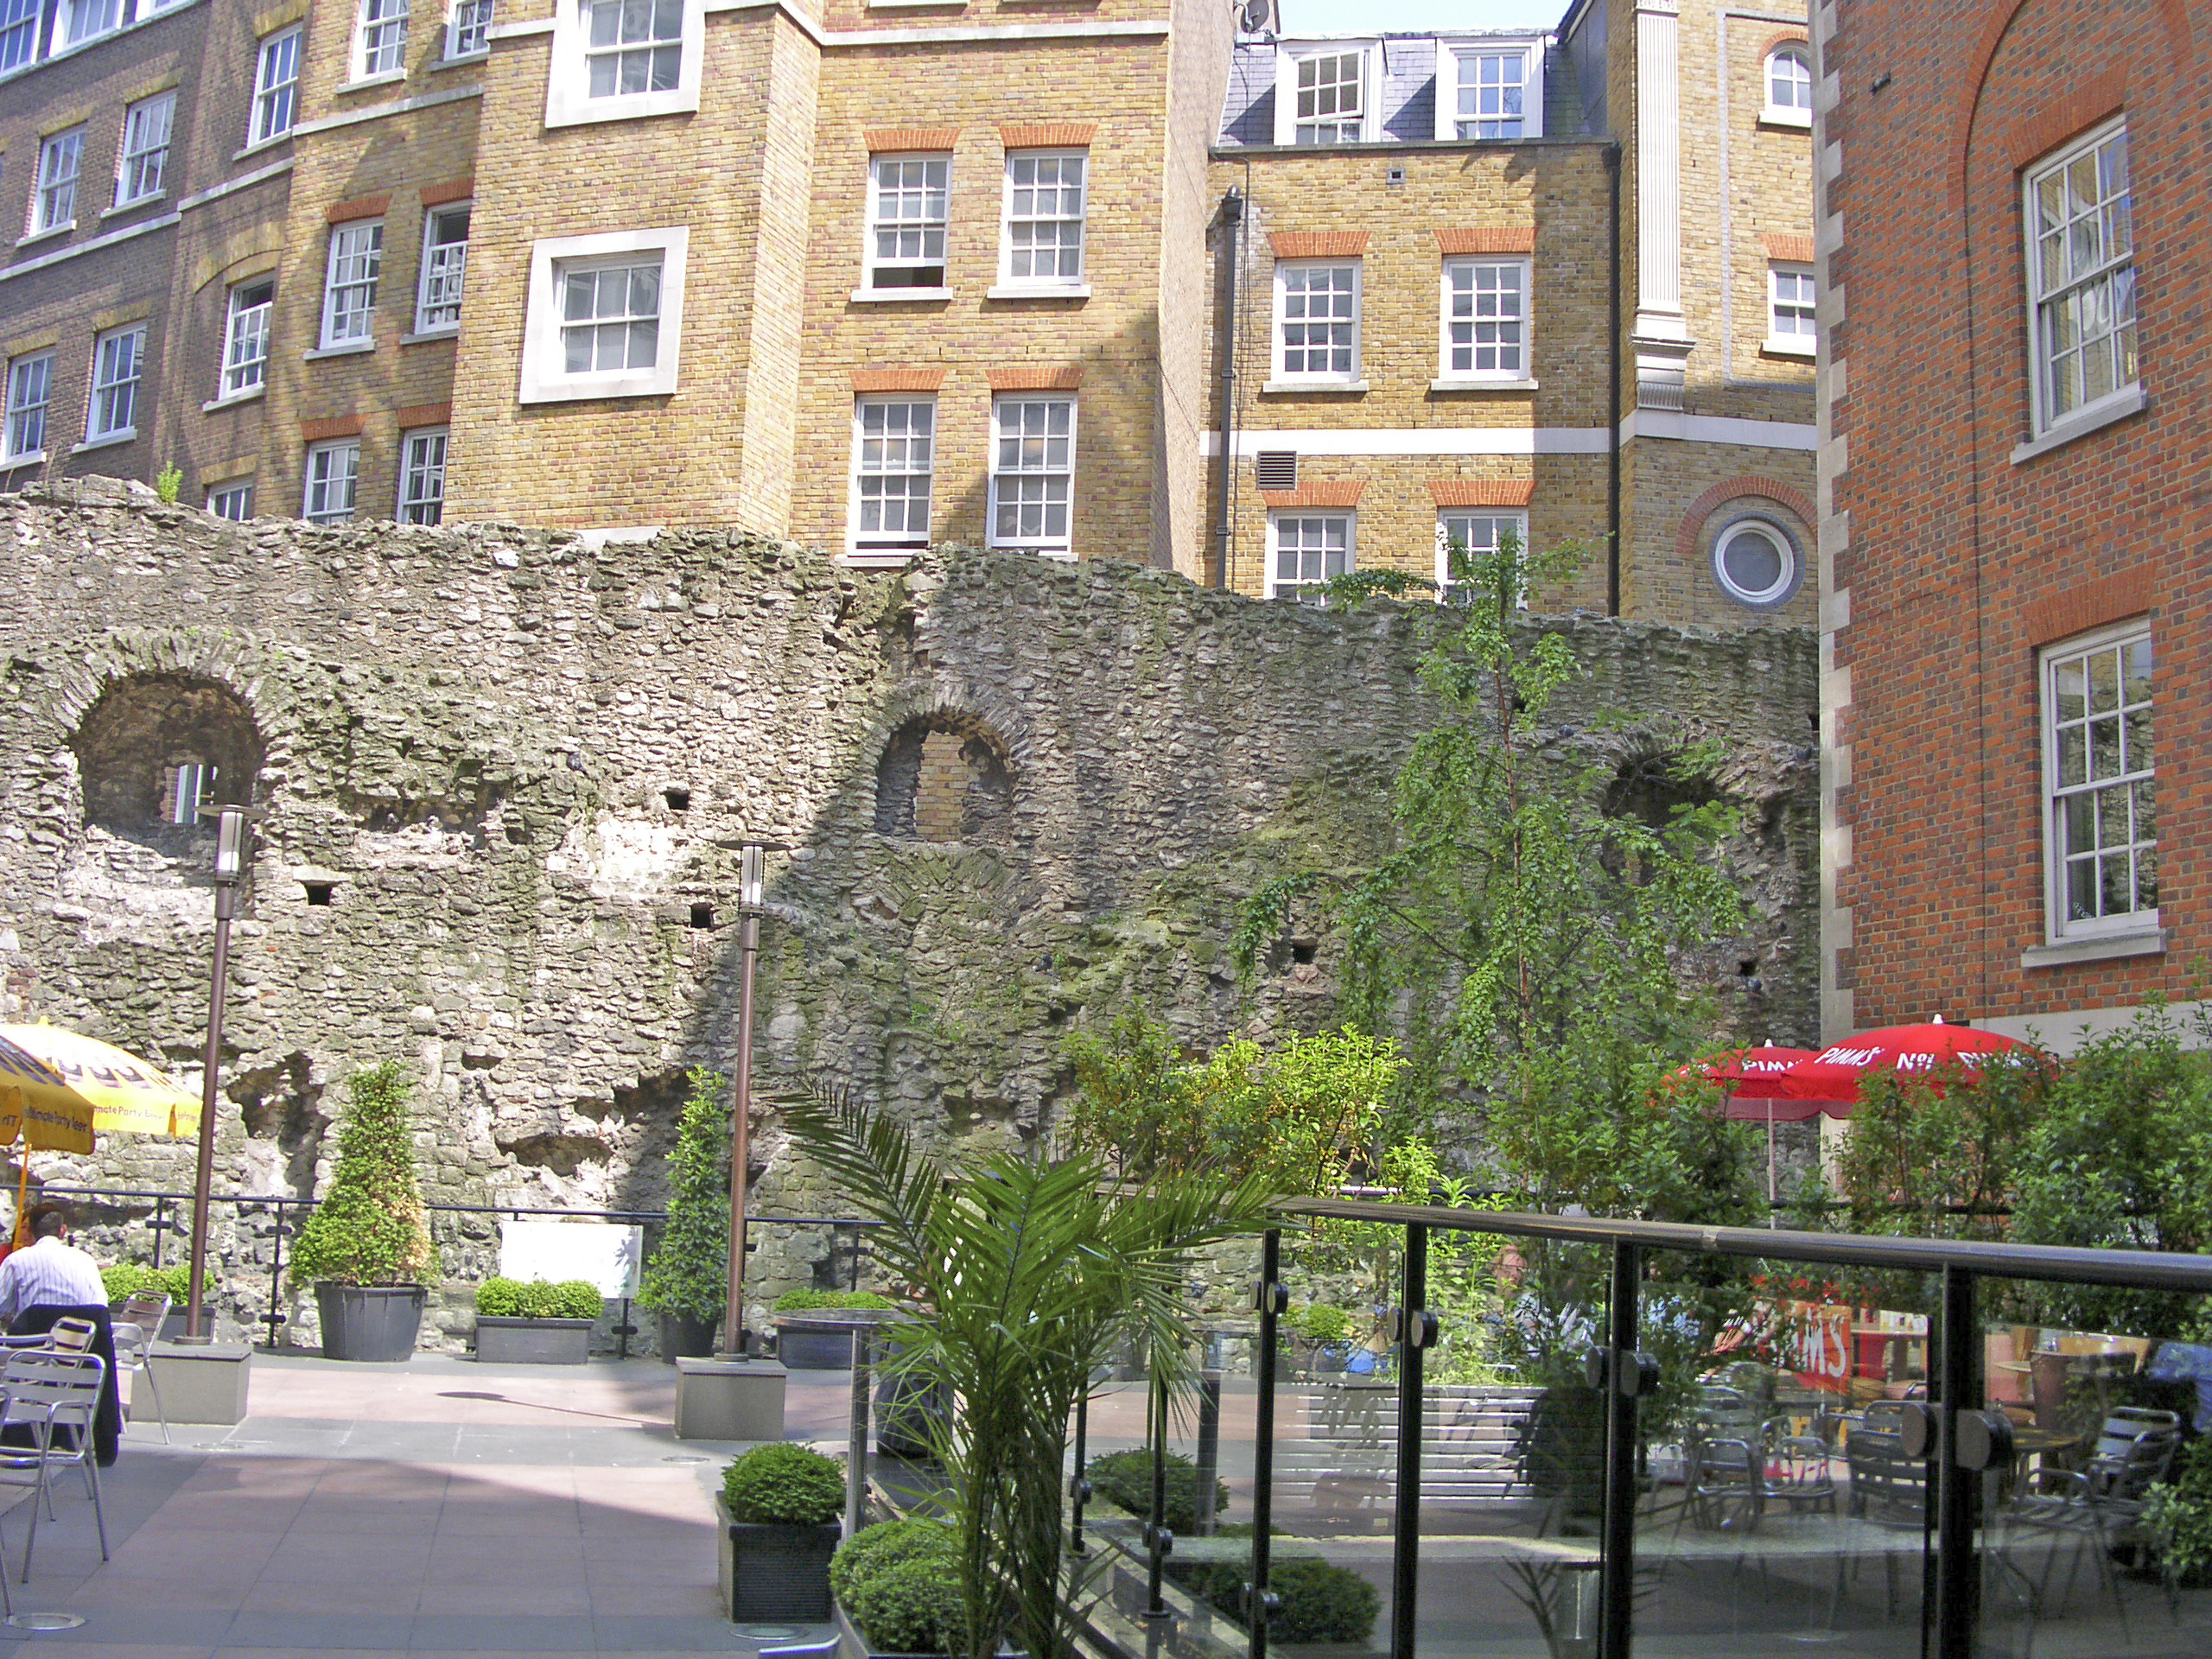 London images ROMAN WALL HD wallpaper and background photos (13008915)